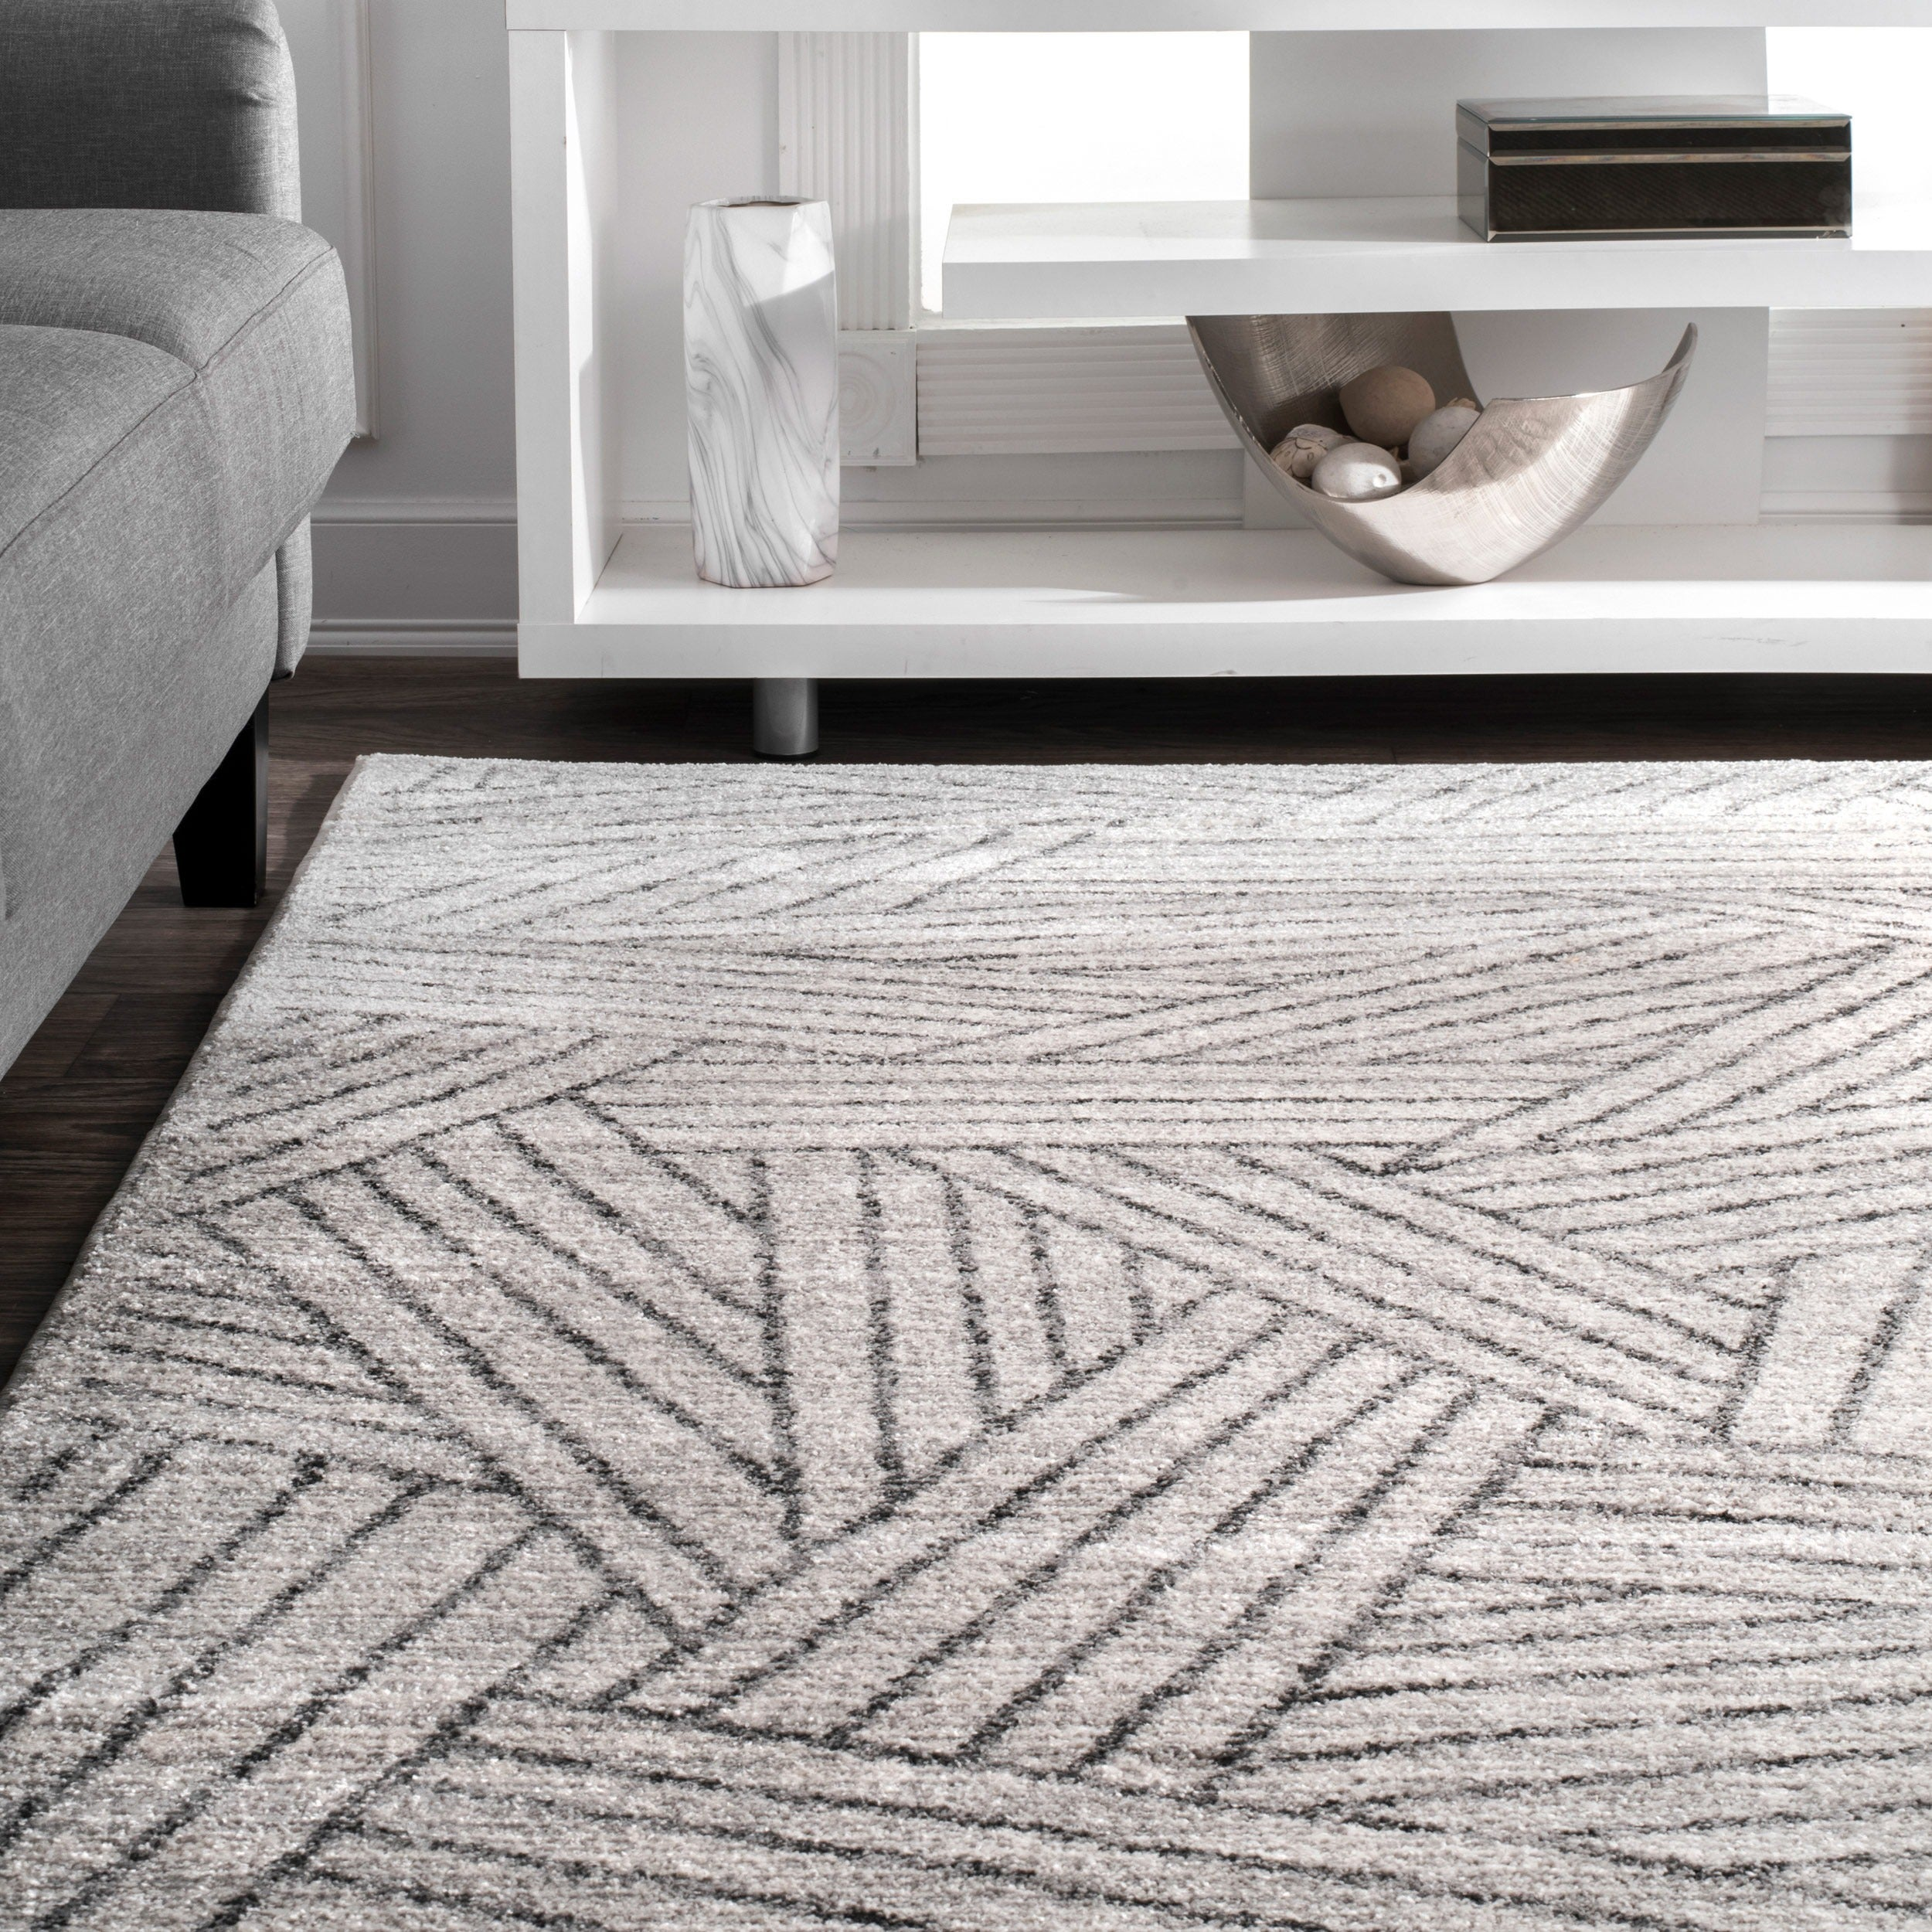 Nuloom Contemporary Overling Grey Striped Boards Area Rug 5 X 8 On Free Shipping Today 17373654